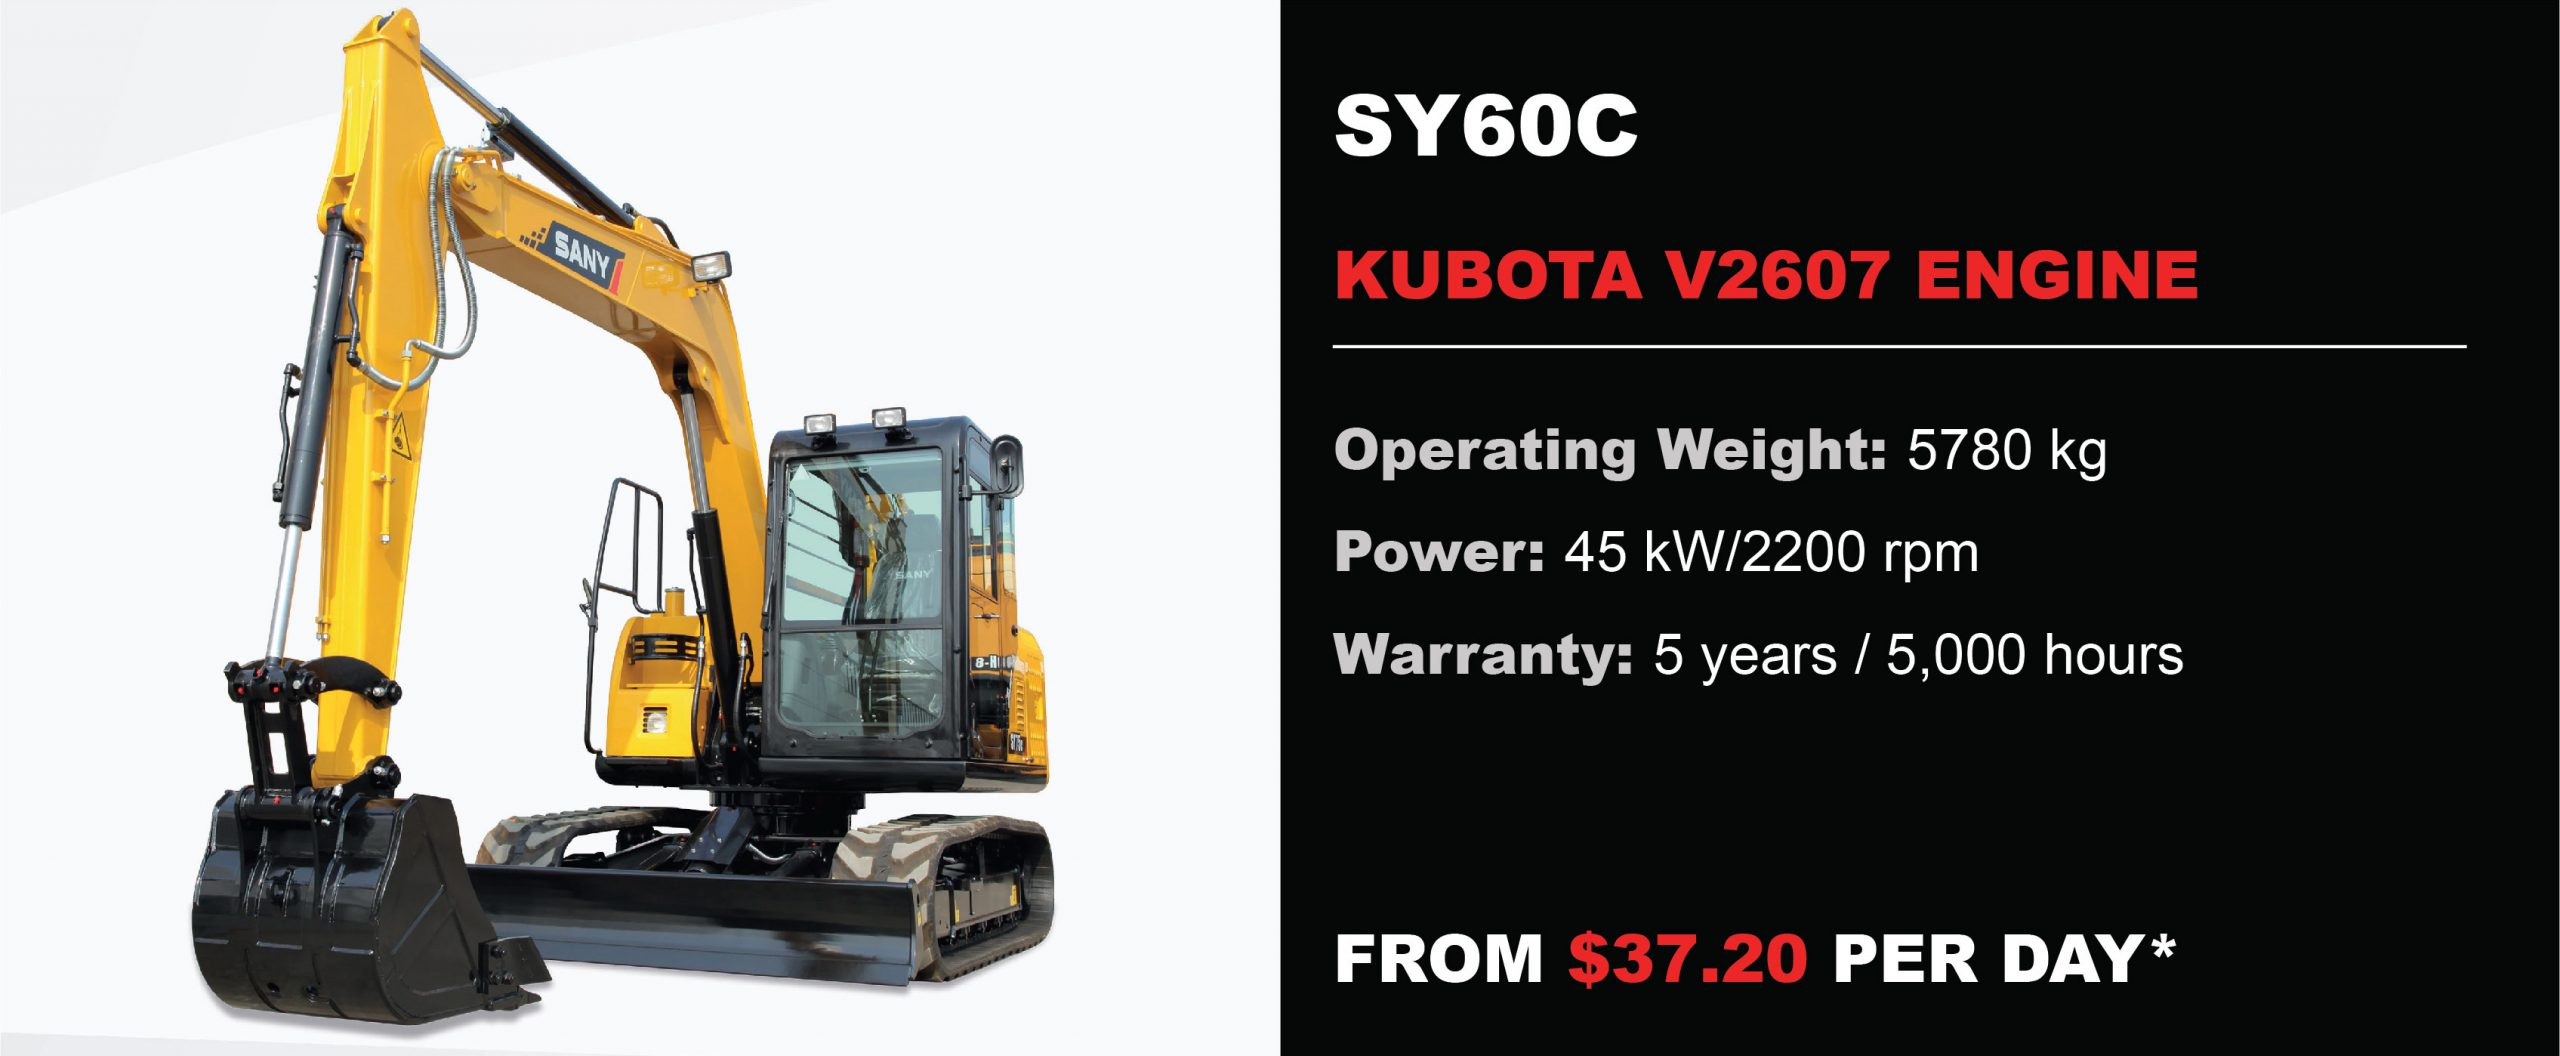 Sany excavator for sale Perth SY60C